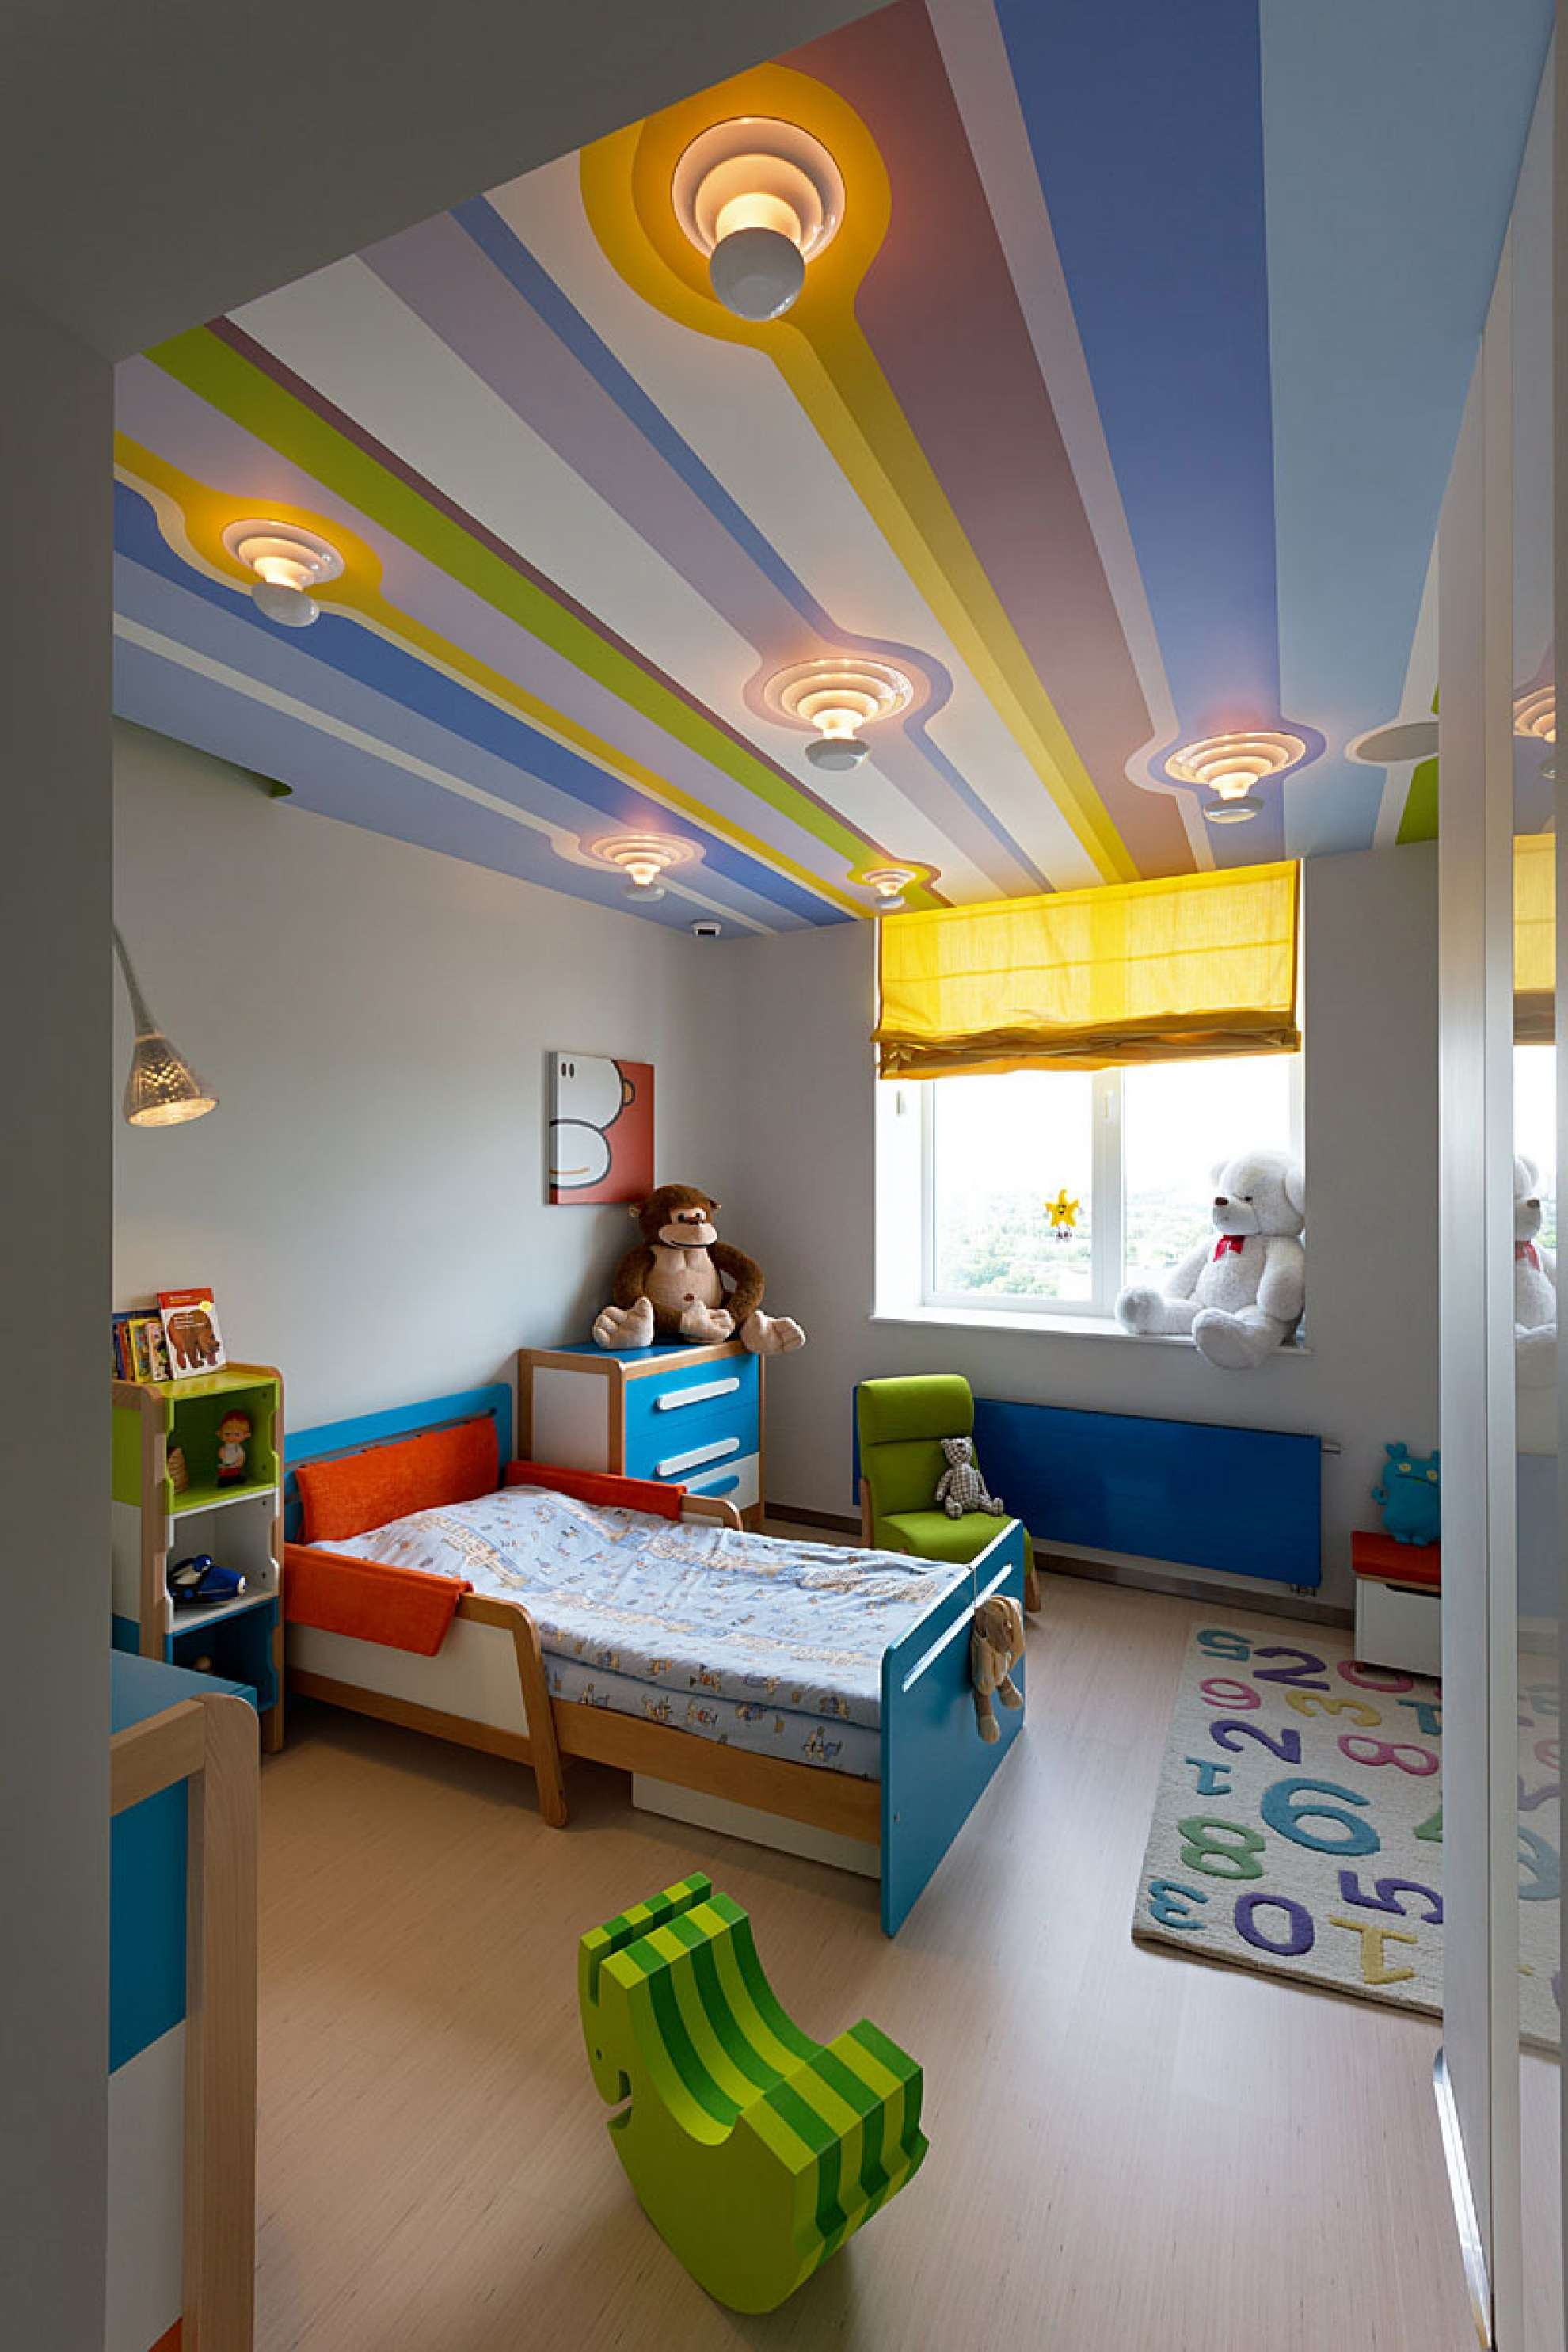 interior-of-the-children's-room.jpg